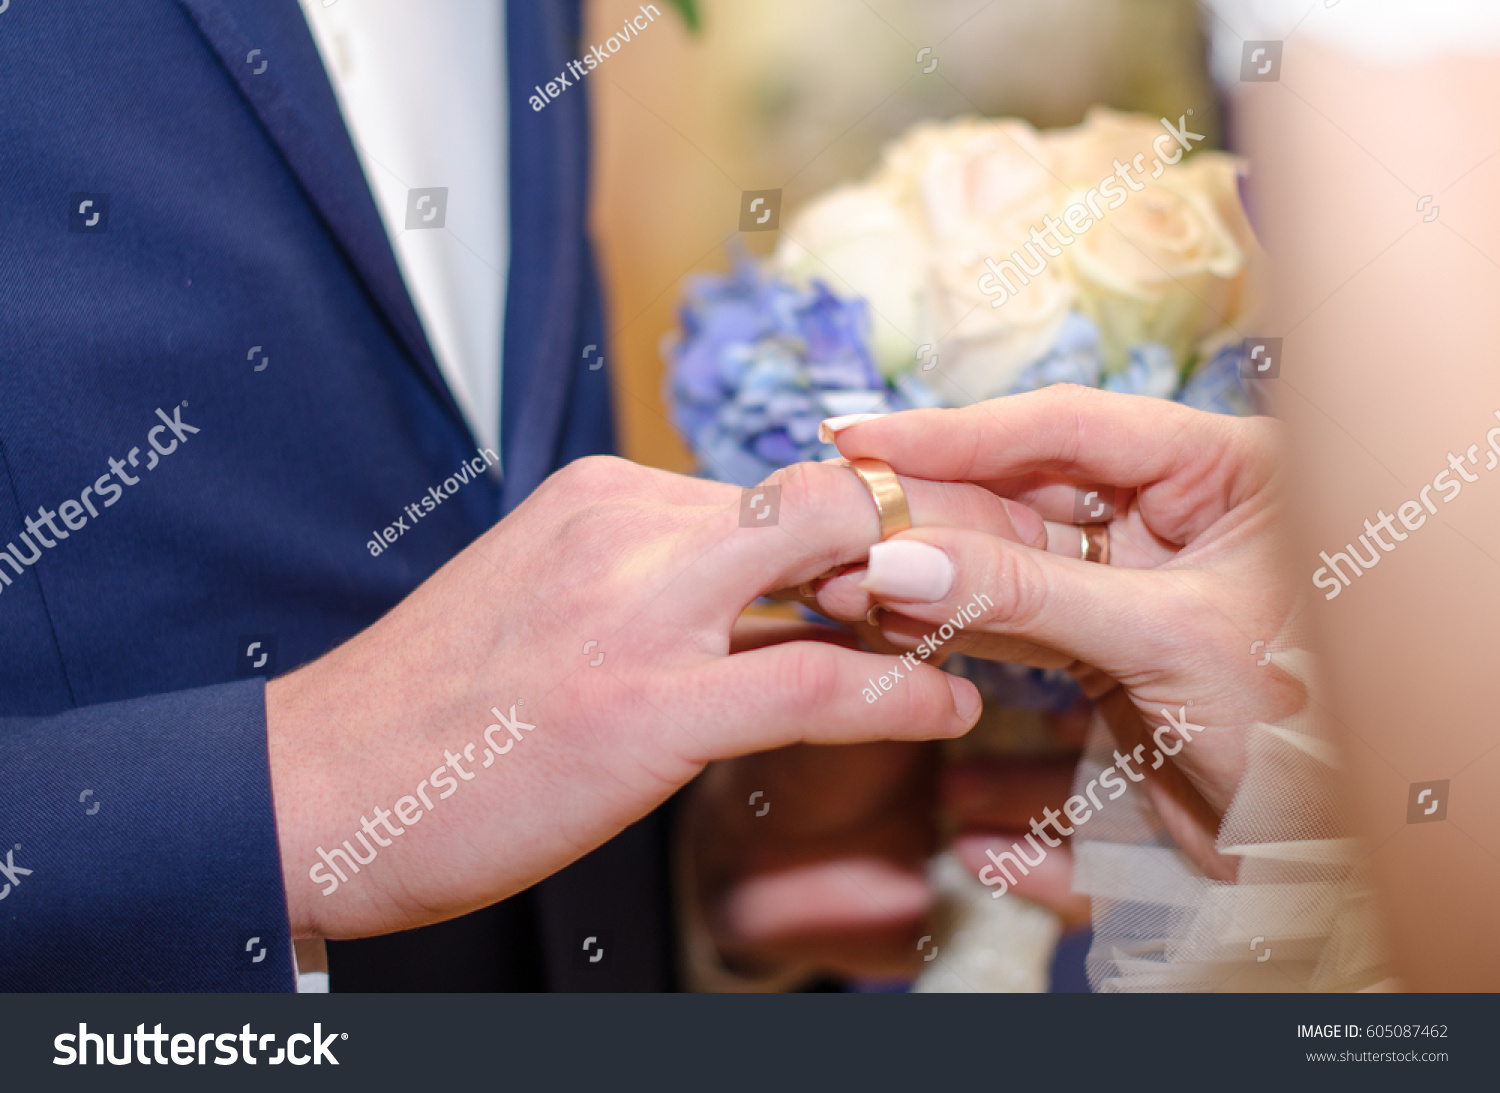 Love Marriage Wedding Ceremony Bride Dresses Stock Photo (Safe to ...